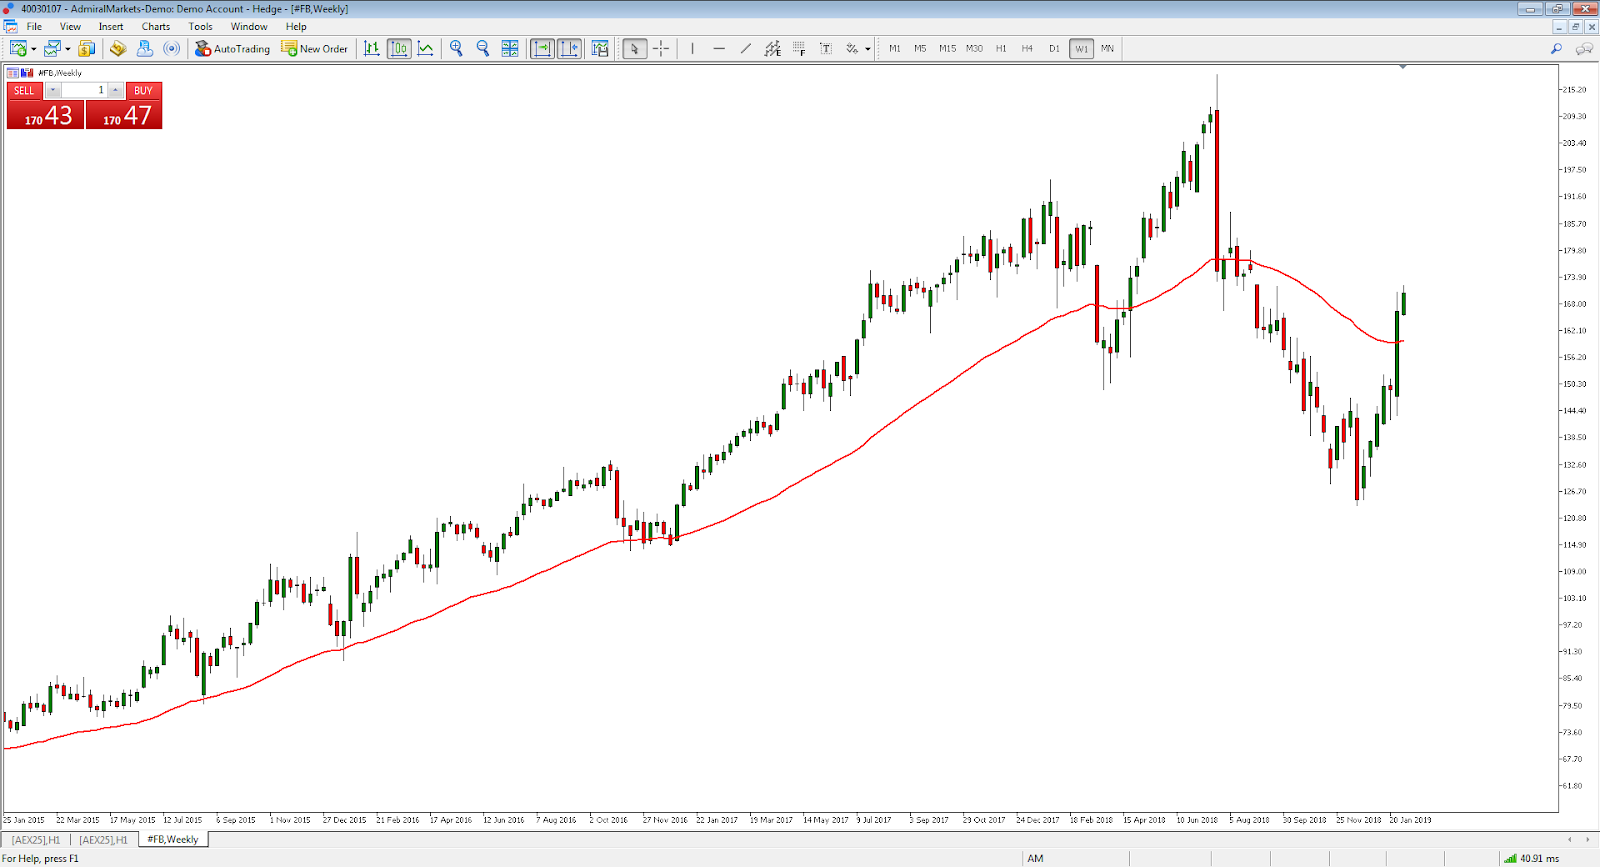 Facebook stock exponential moving average